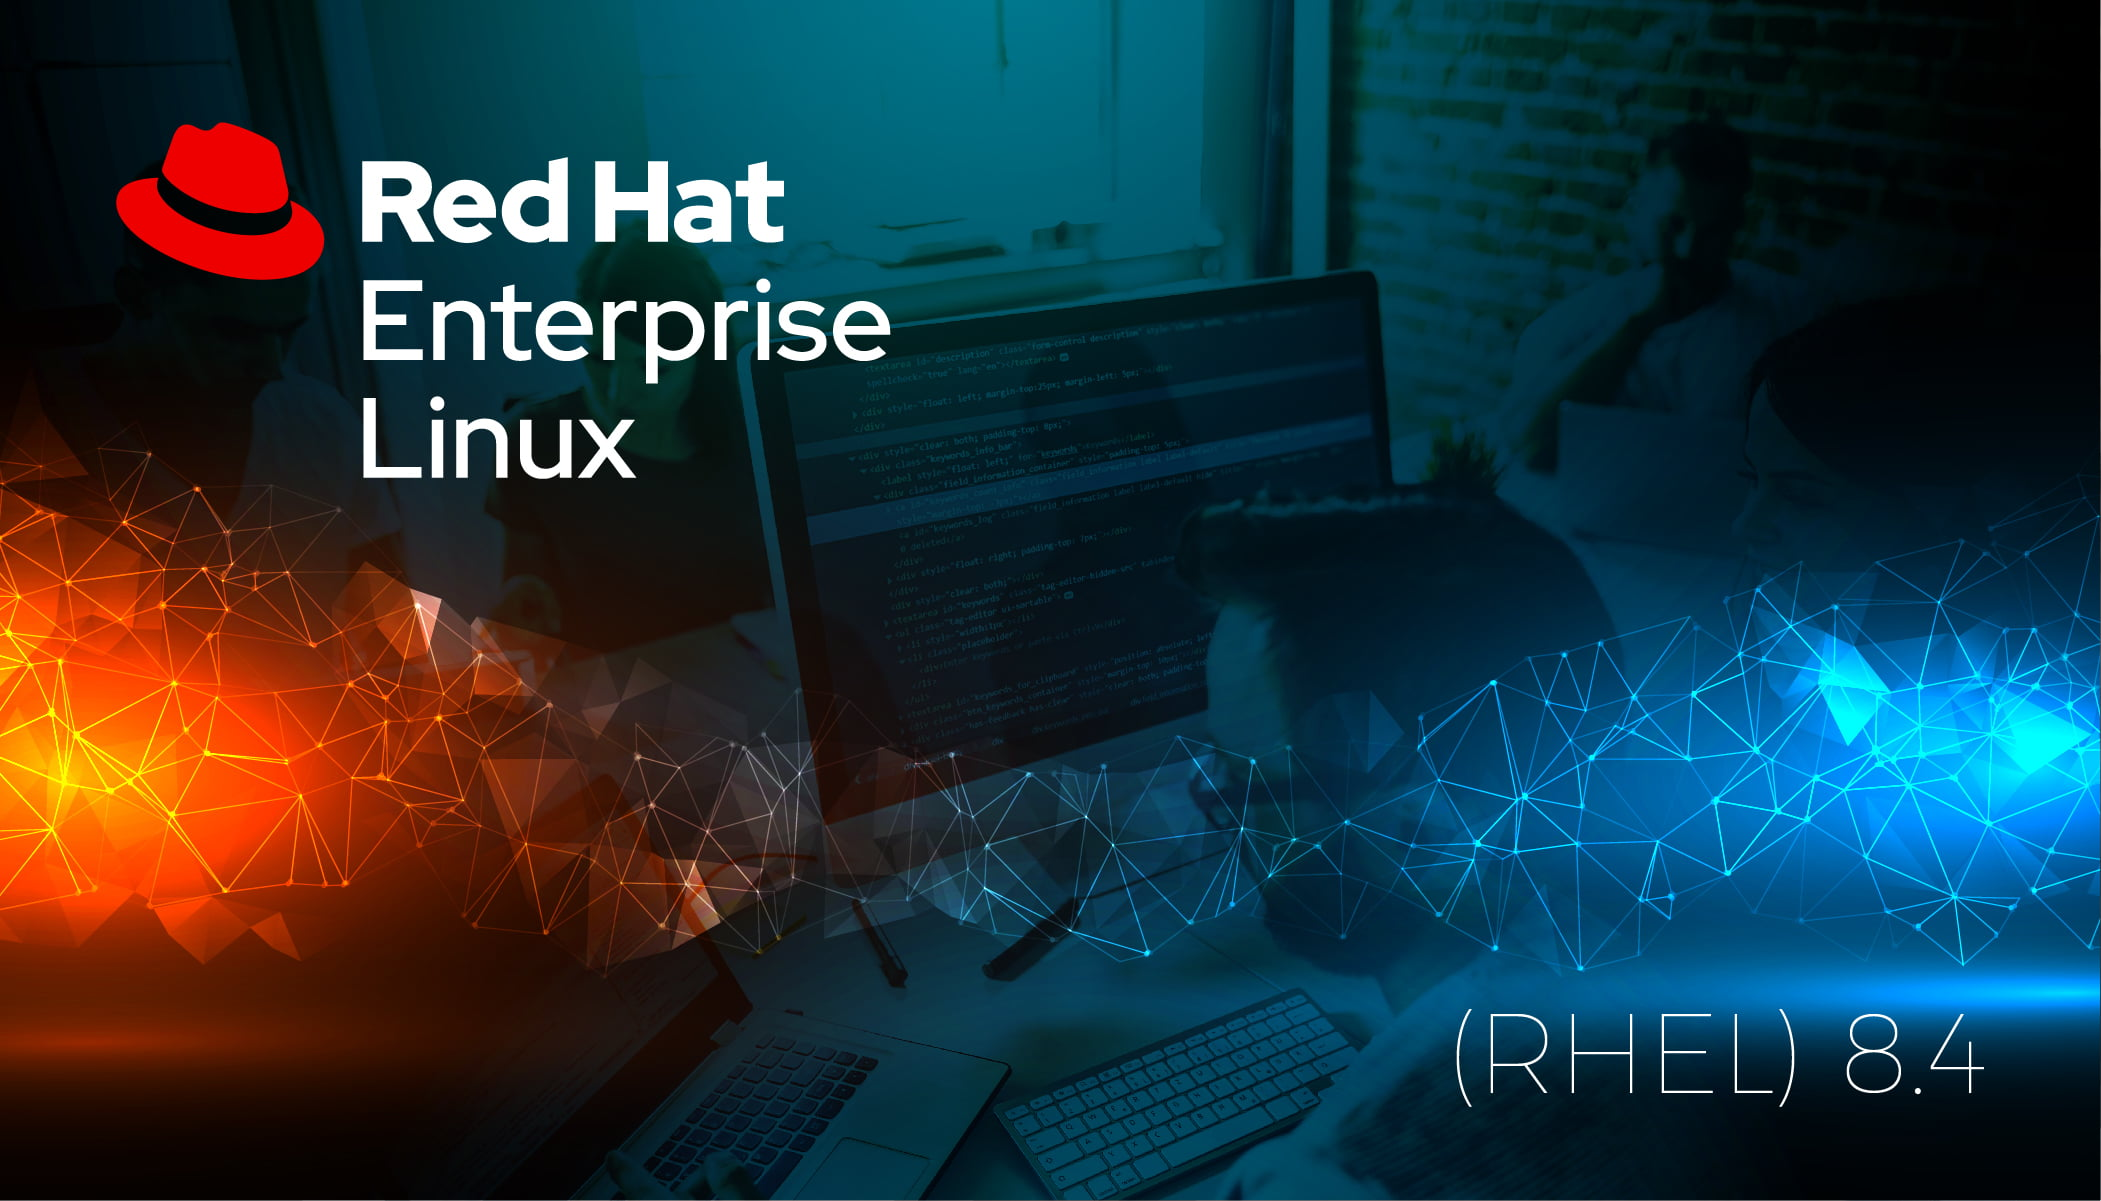 Red Hat lanseaza Red Hat Enterprise Linux (RHEL) 8.4 1